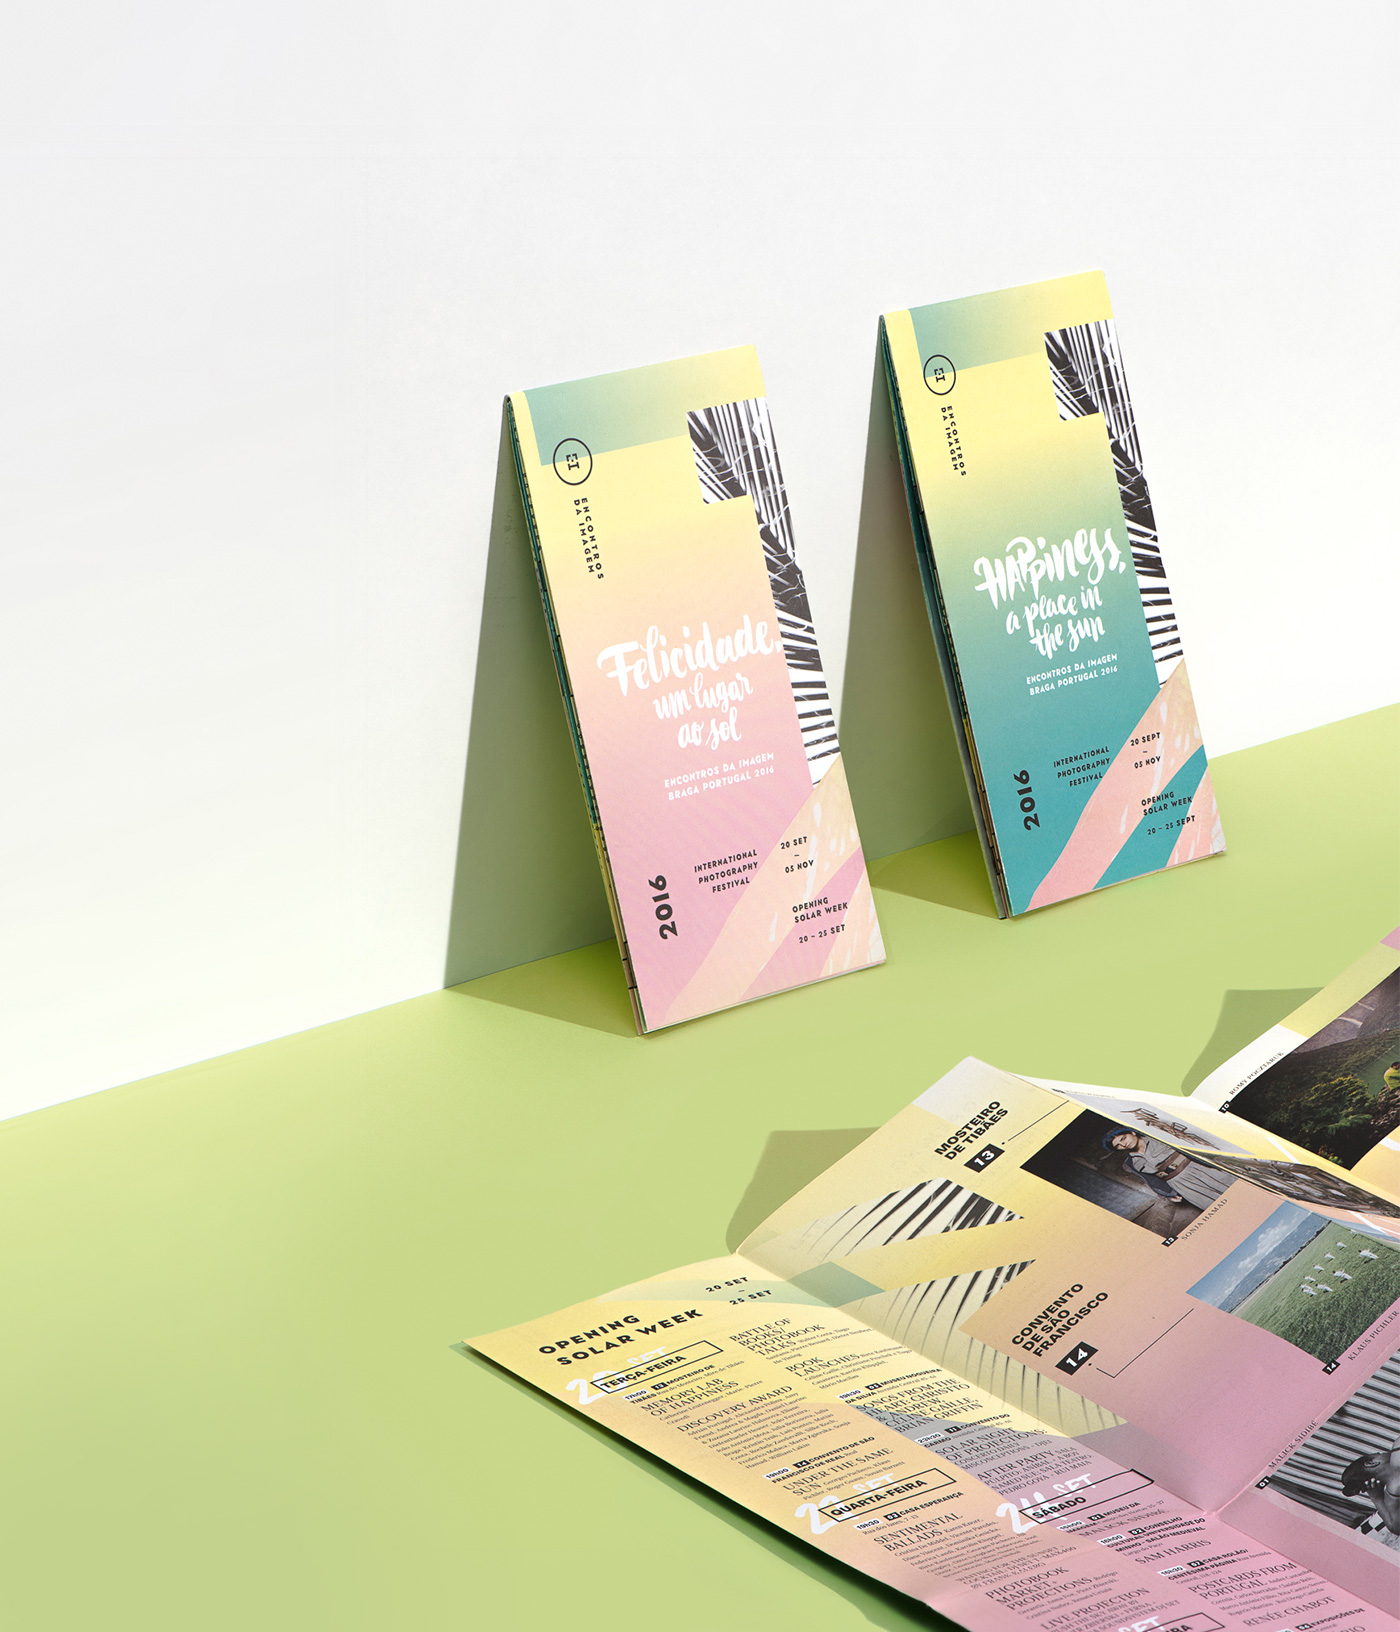 Encontros da Imagem 2016 — fold out with event timetable and map — event identity by Gen Design Studio